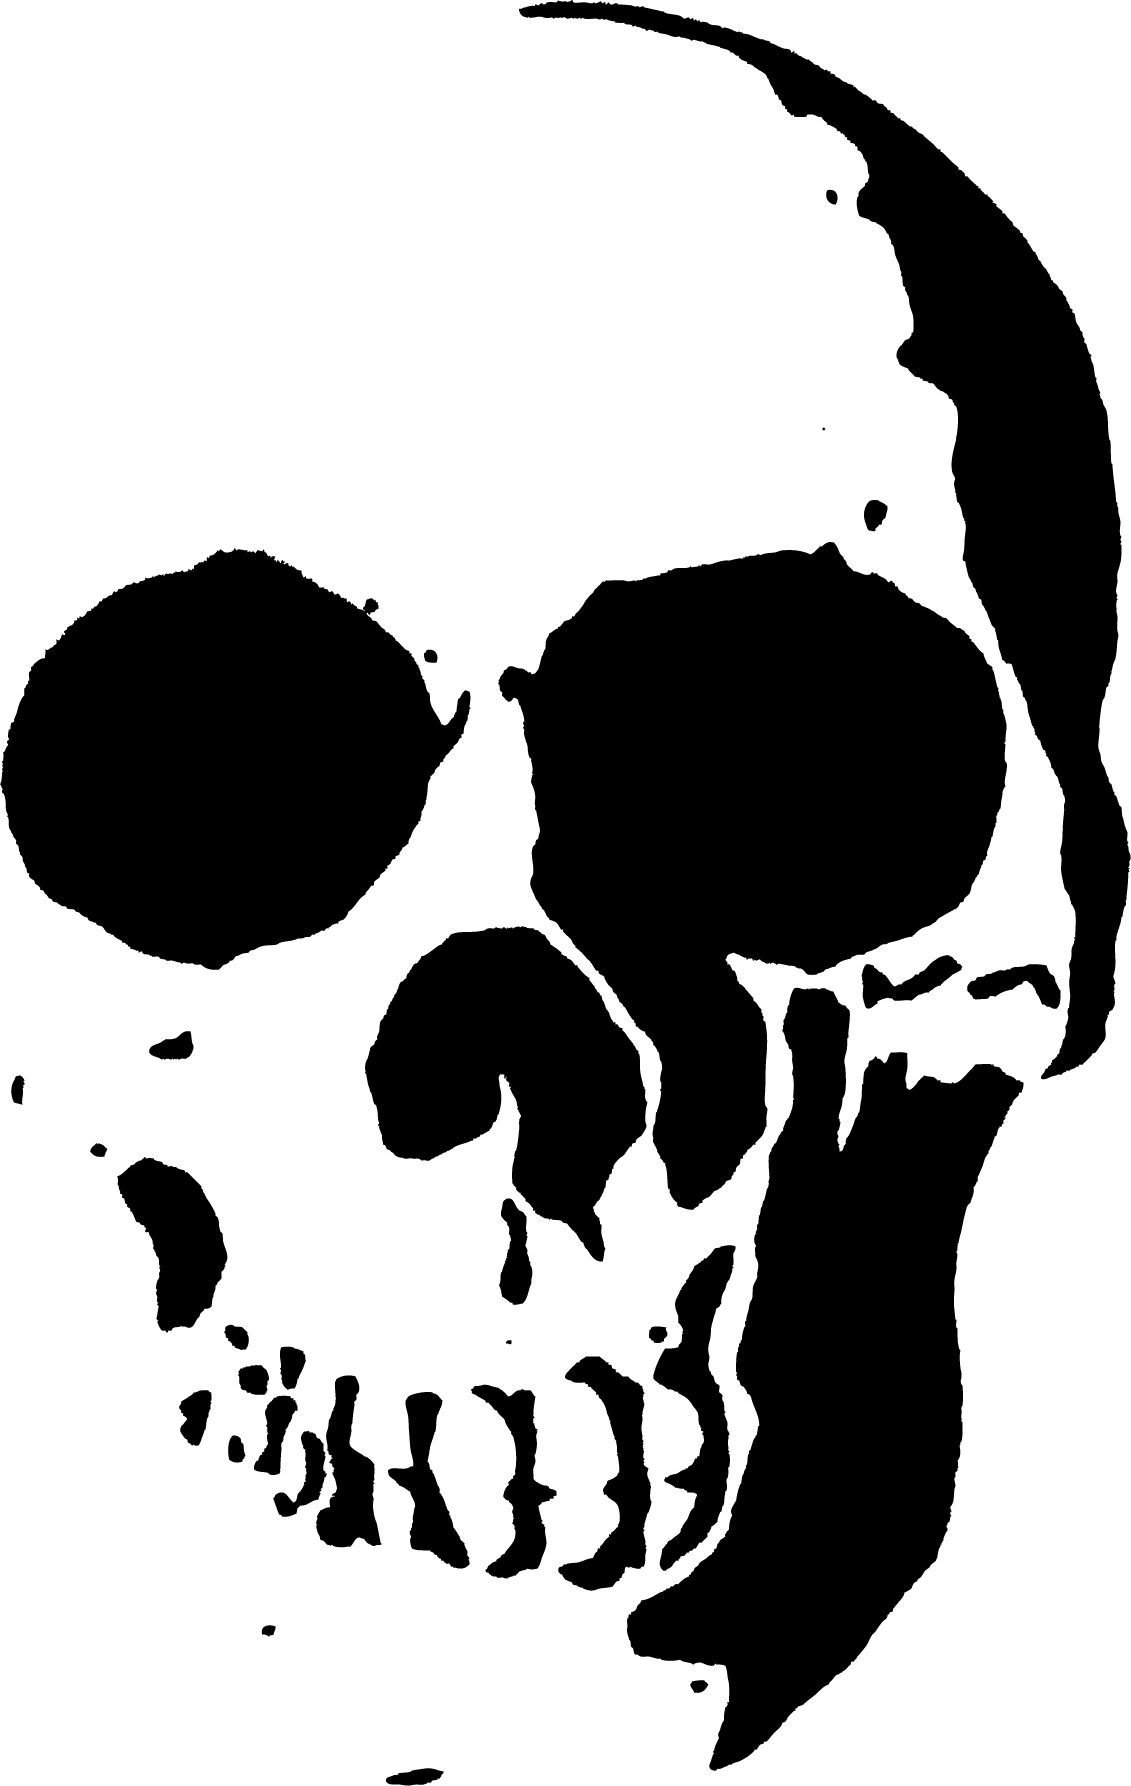 photo relating to Printable Skull Stencils called 23 Totally free Skull Stencil Printable Templates Lead Layouts